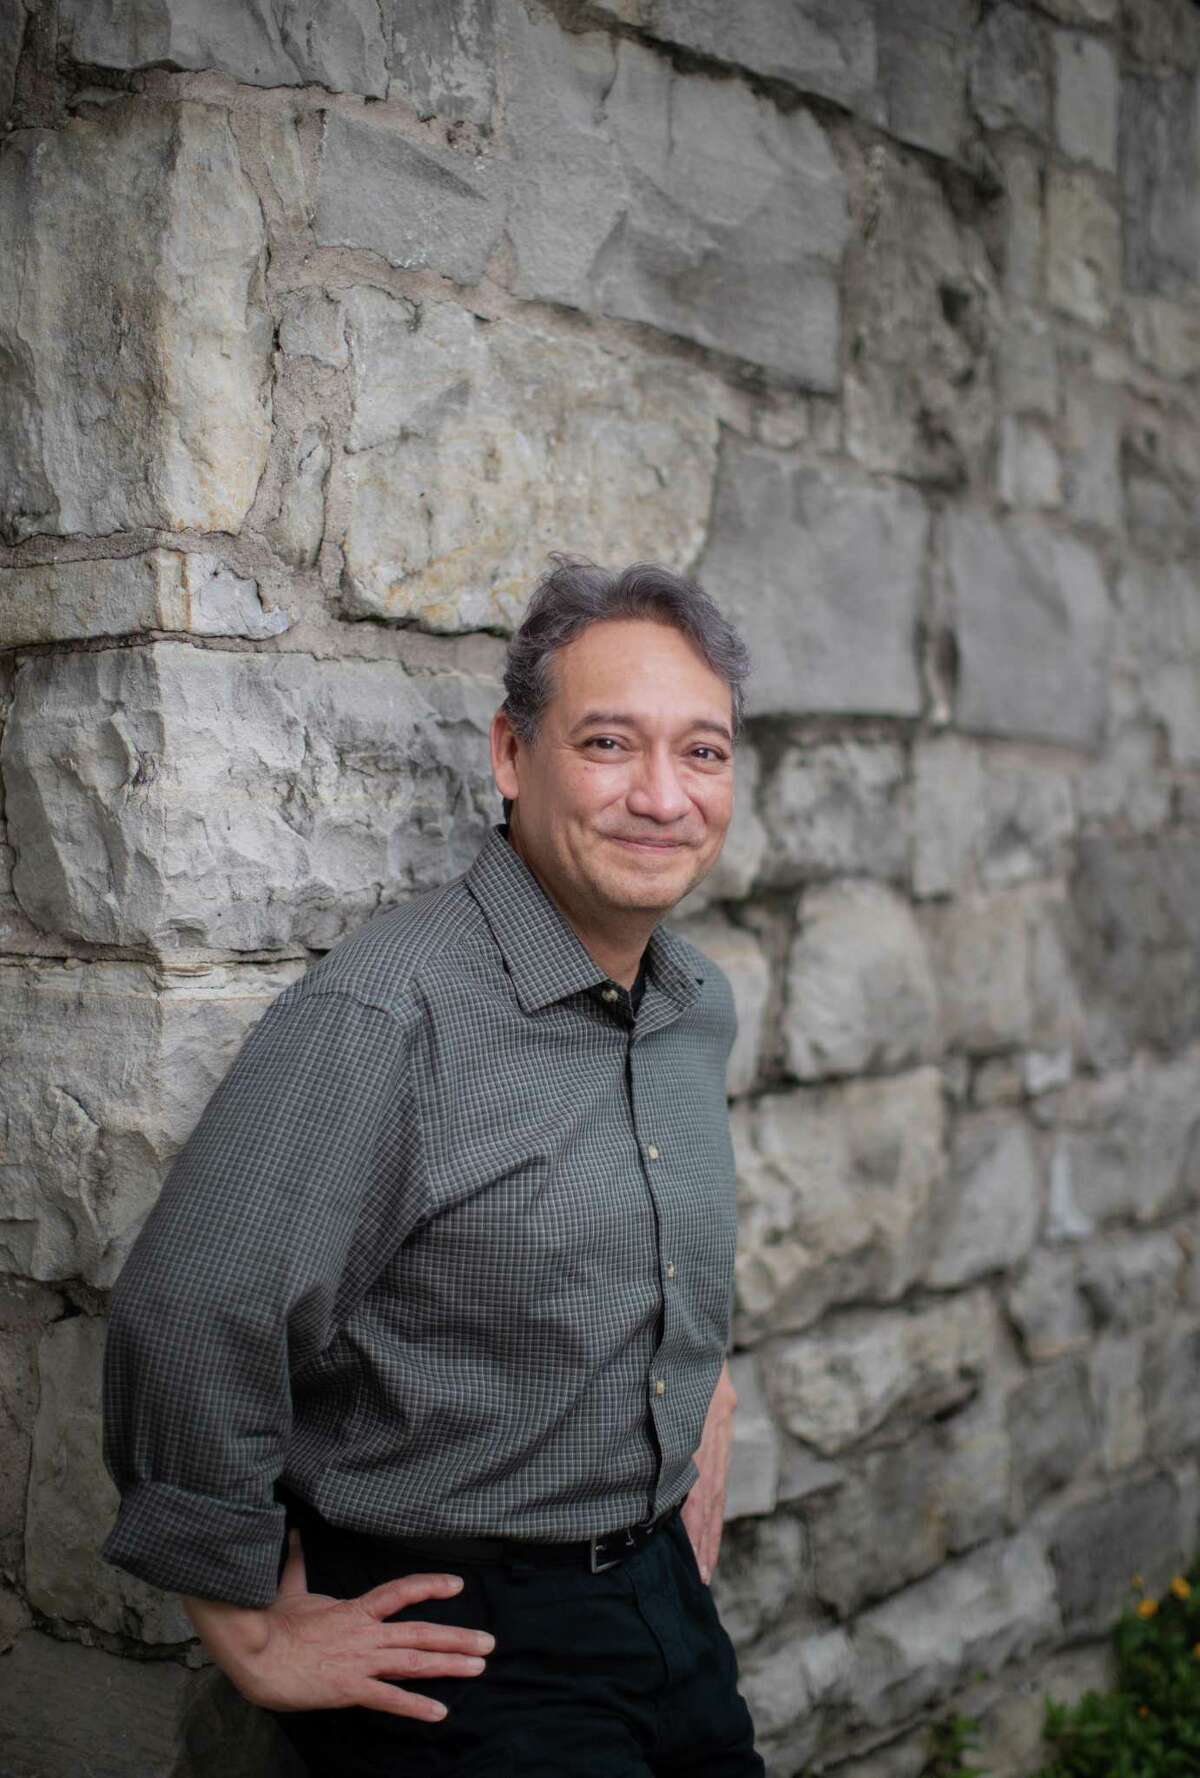 Steven Vargas is a 53-year-old Houston native who has emerged as a local, statewide and national voice in HIV advocacy. He's an HIV activist and survivor.